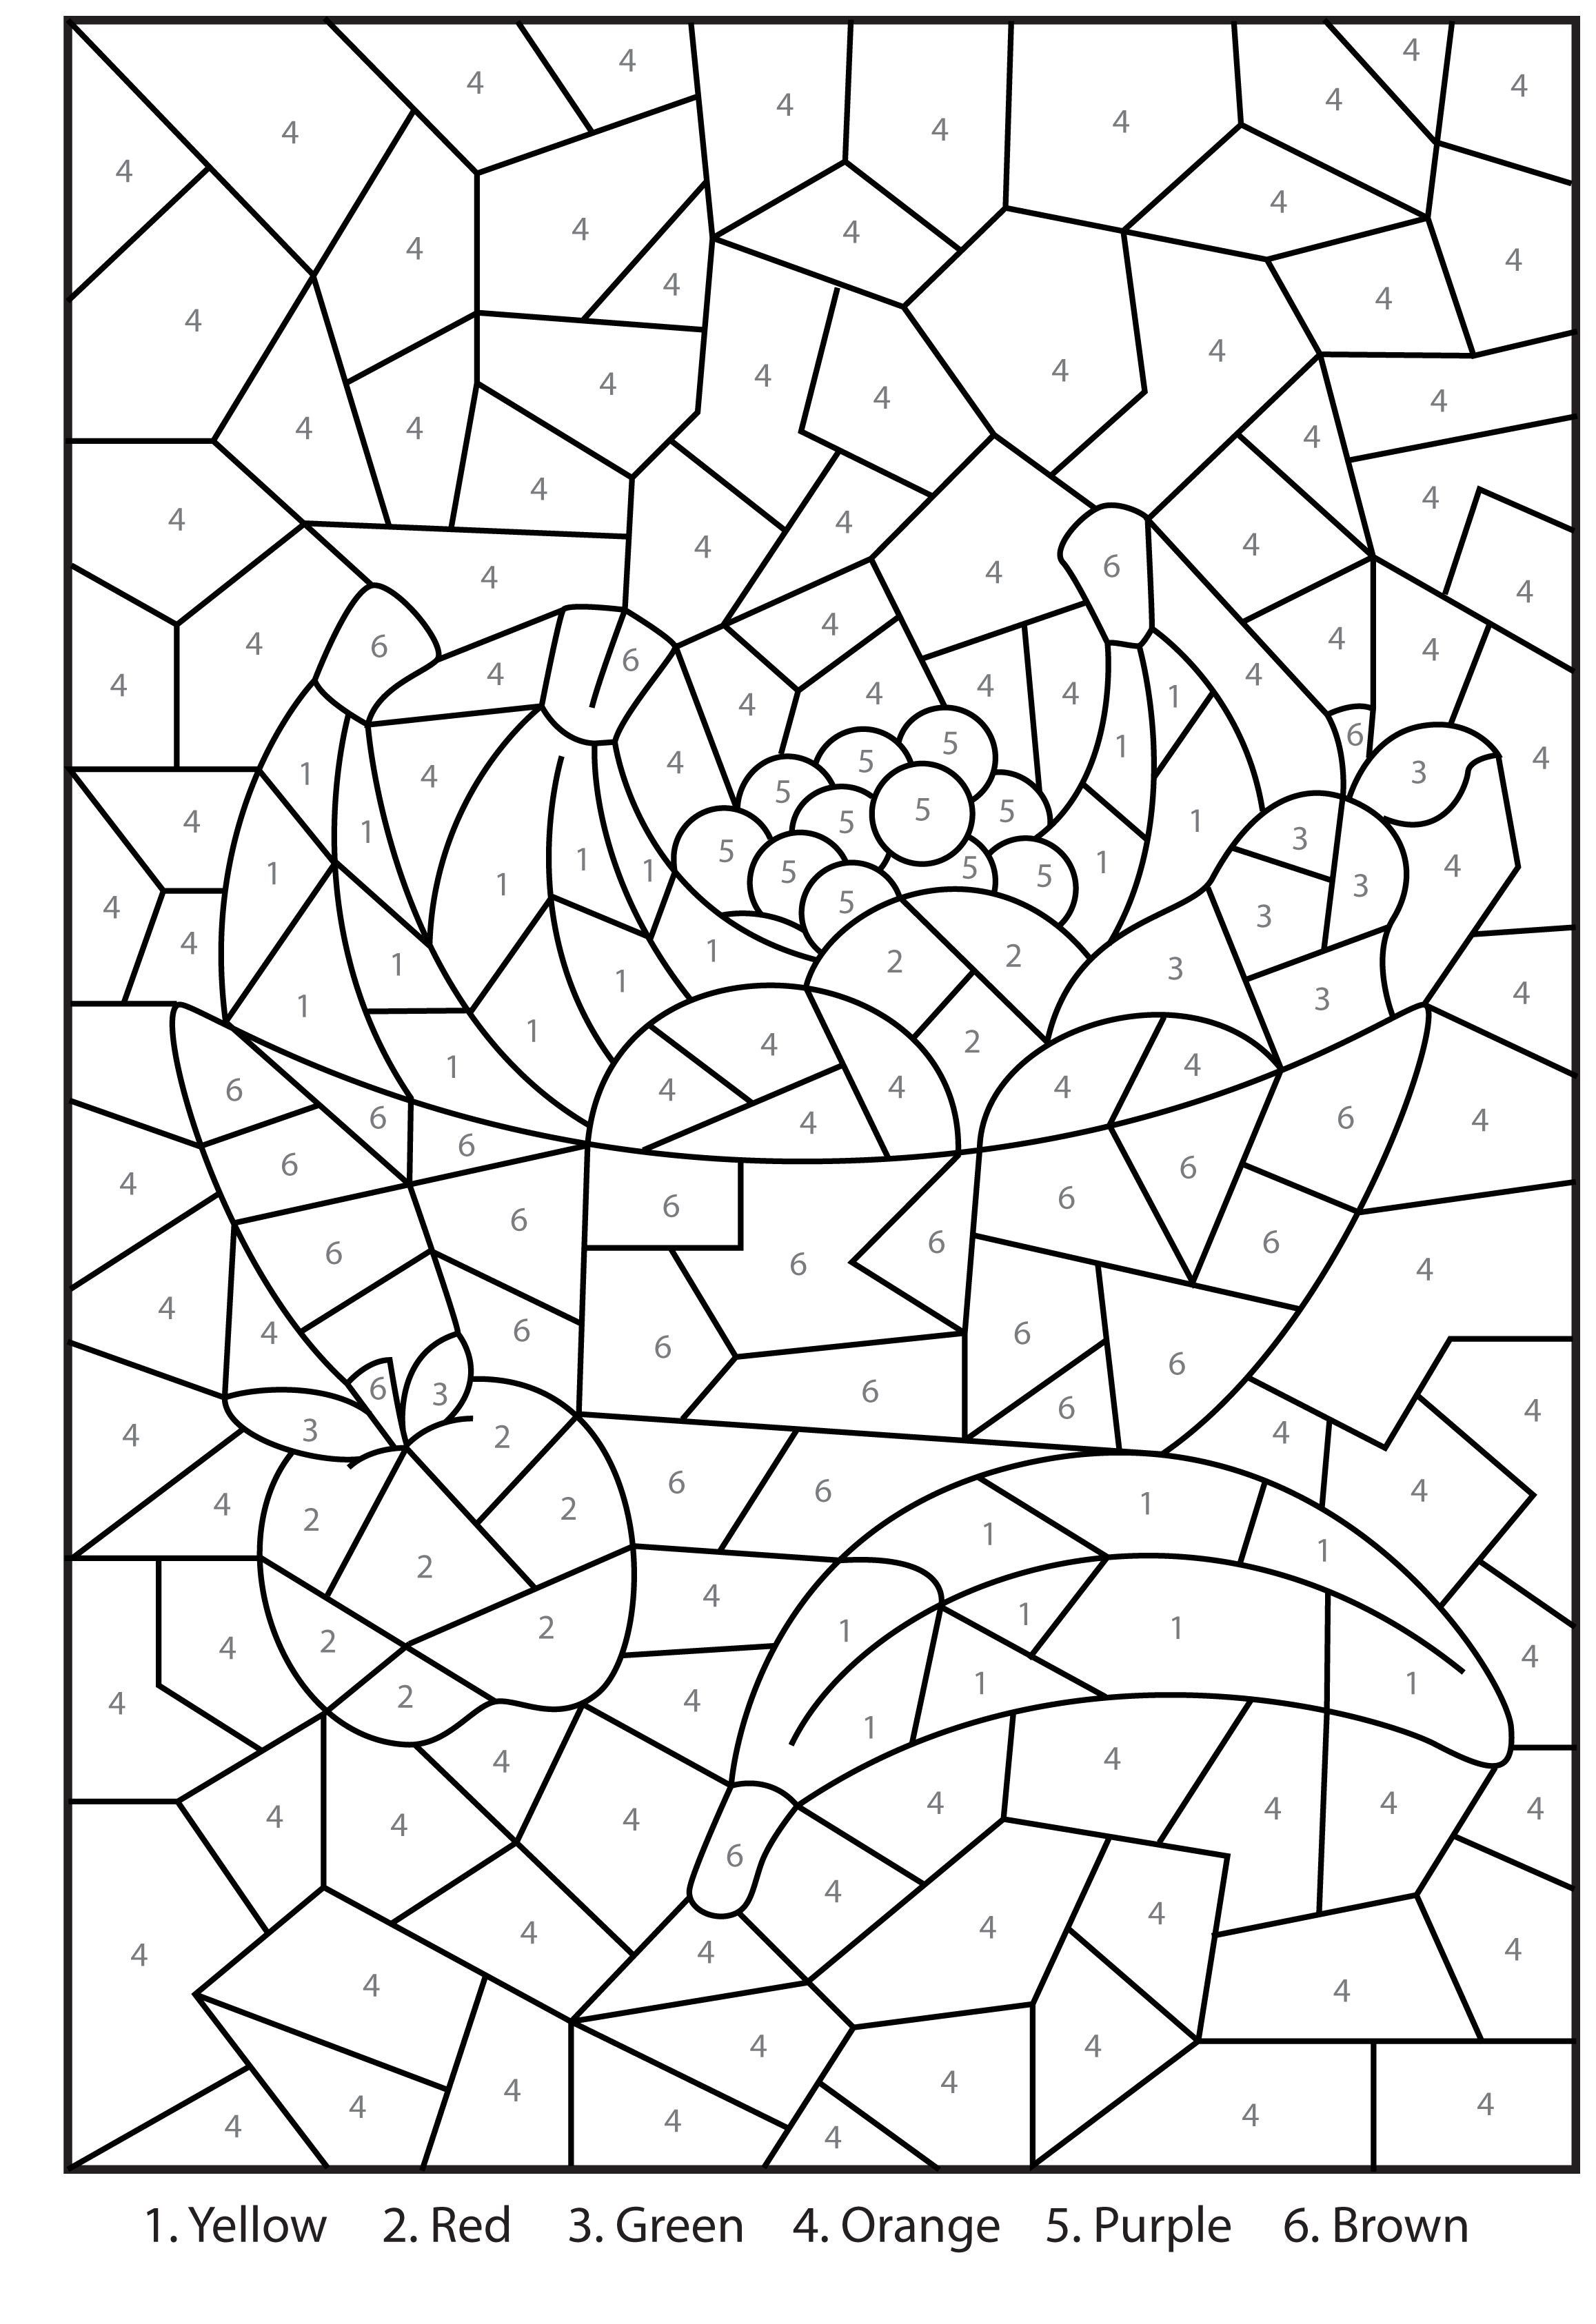 10 Free Printable Color By Number Division Worksheets Printable Color By Number Dog Printa Color By Number Printable Coloring Books Printable Coloring Pages